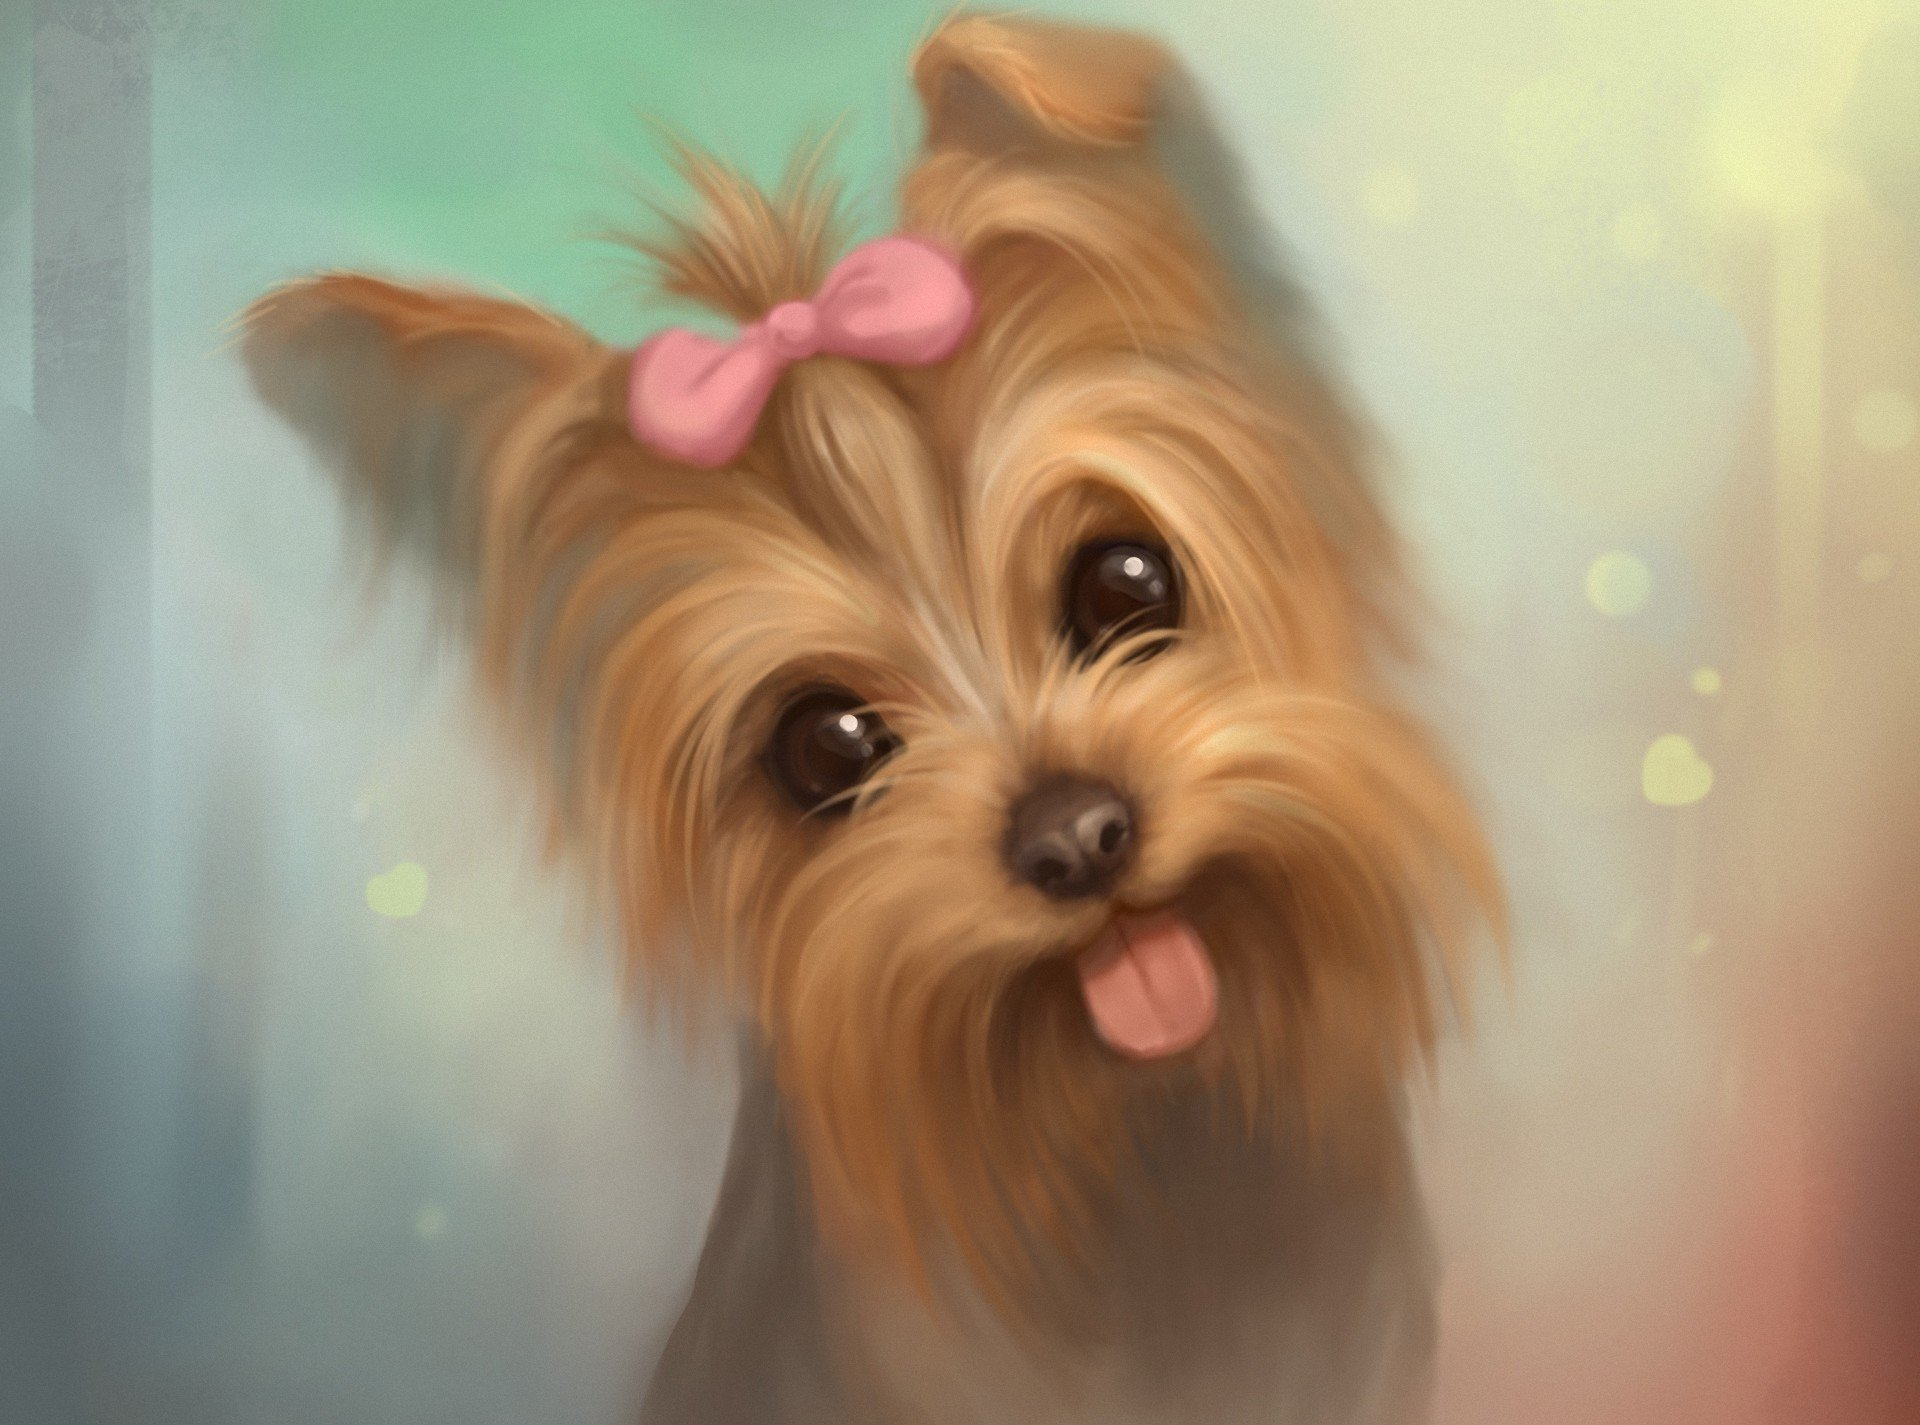 Lbj Images Cute Yorkie Dog Hd Wallpaper And Background Photos